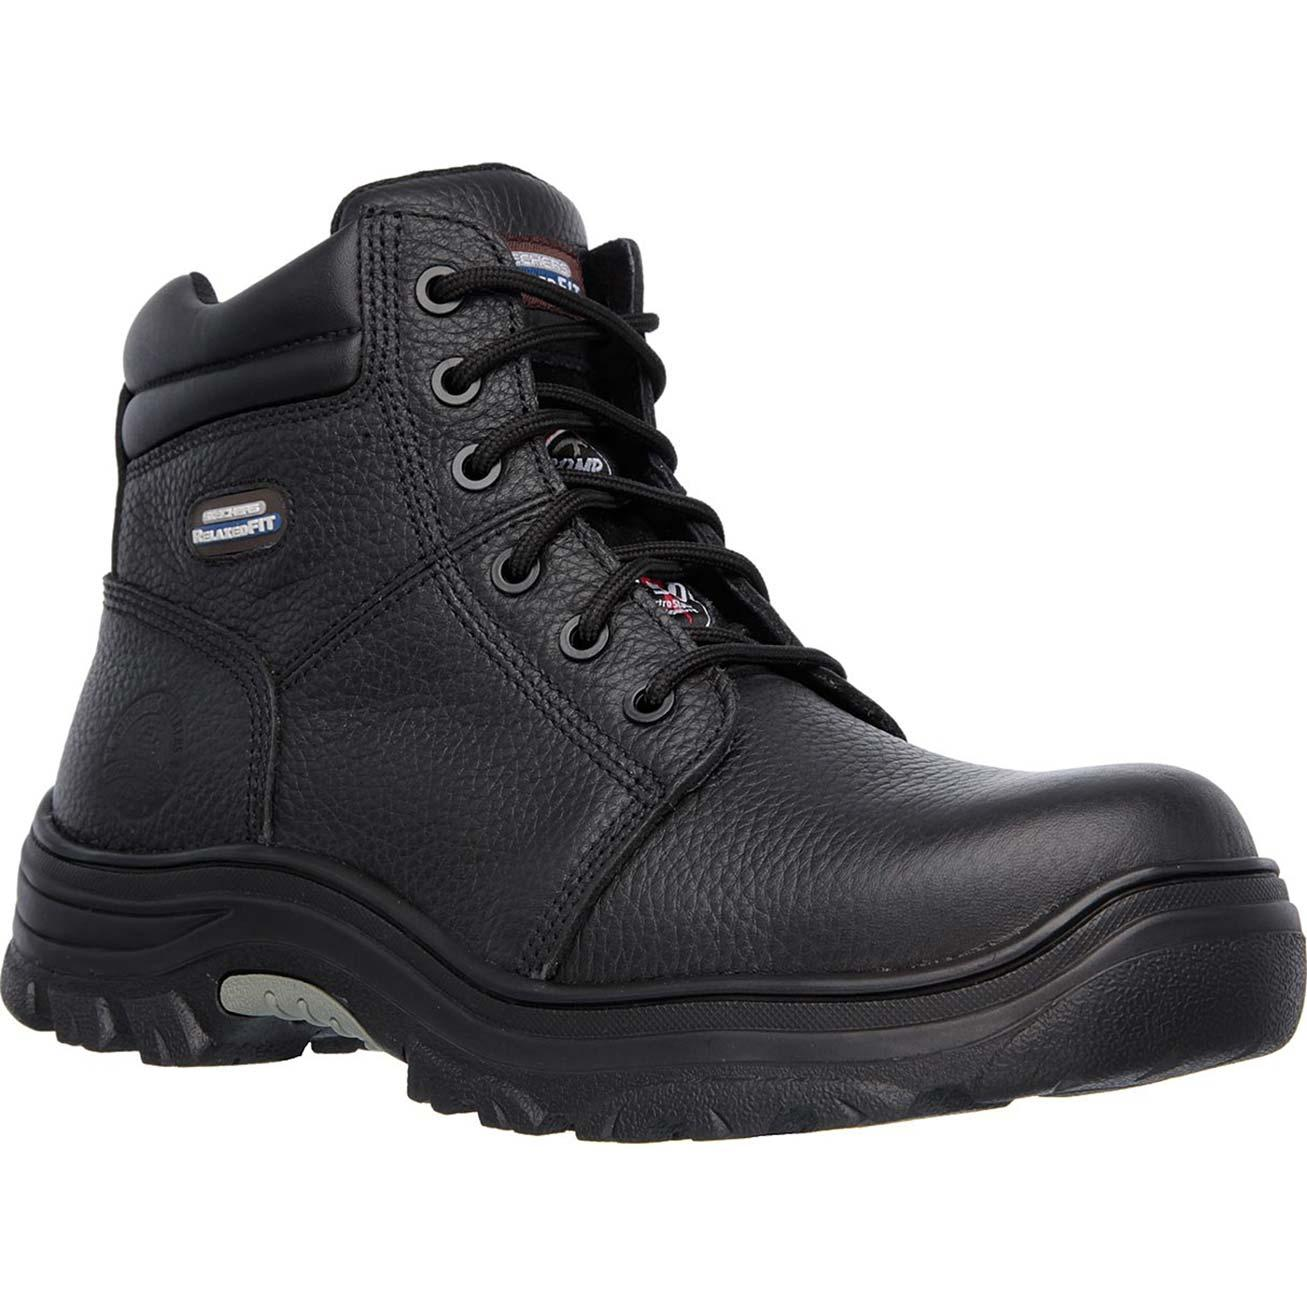 a7a13ee19ac SKECHERS Work Relaxed Fit Burgin Composite Toe Puncture-Resistant Work Boot